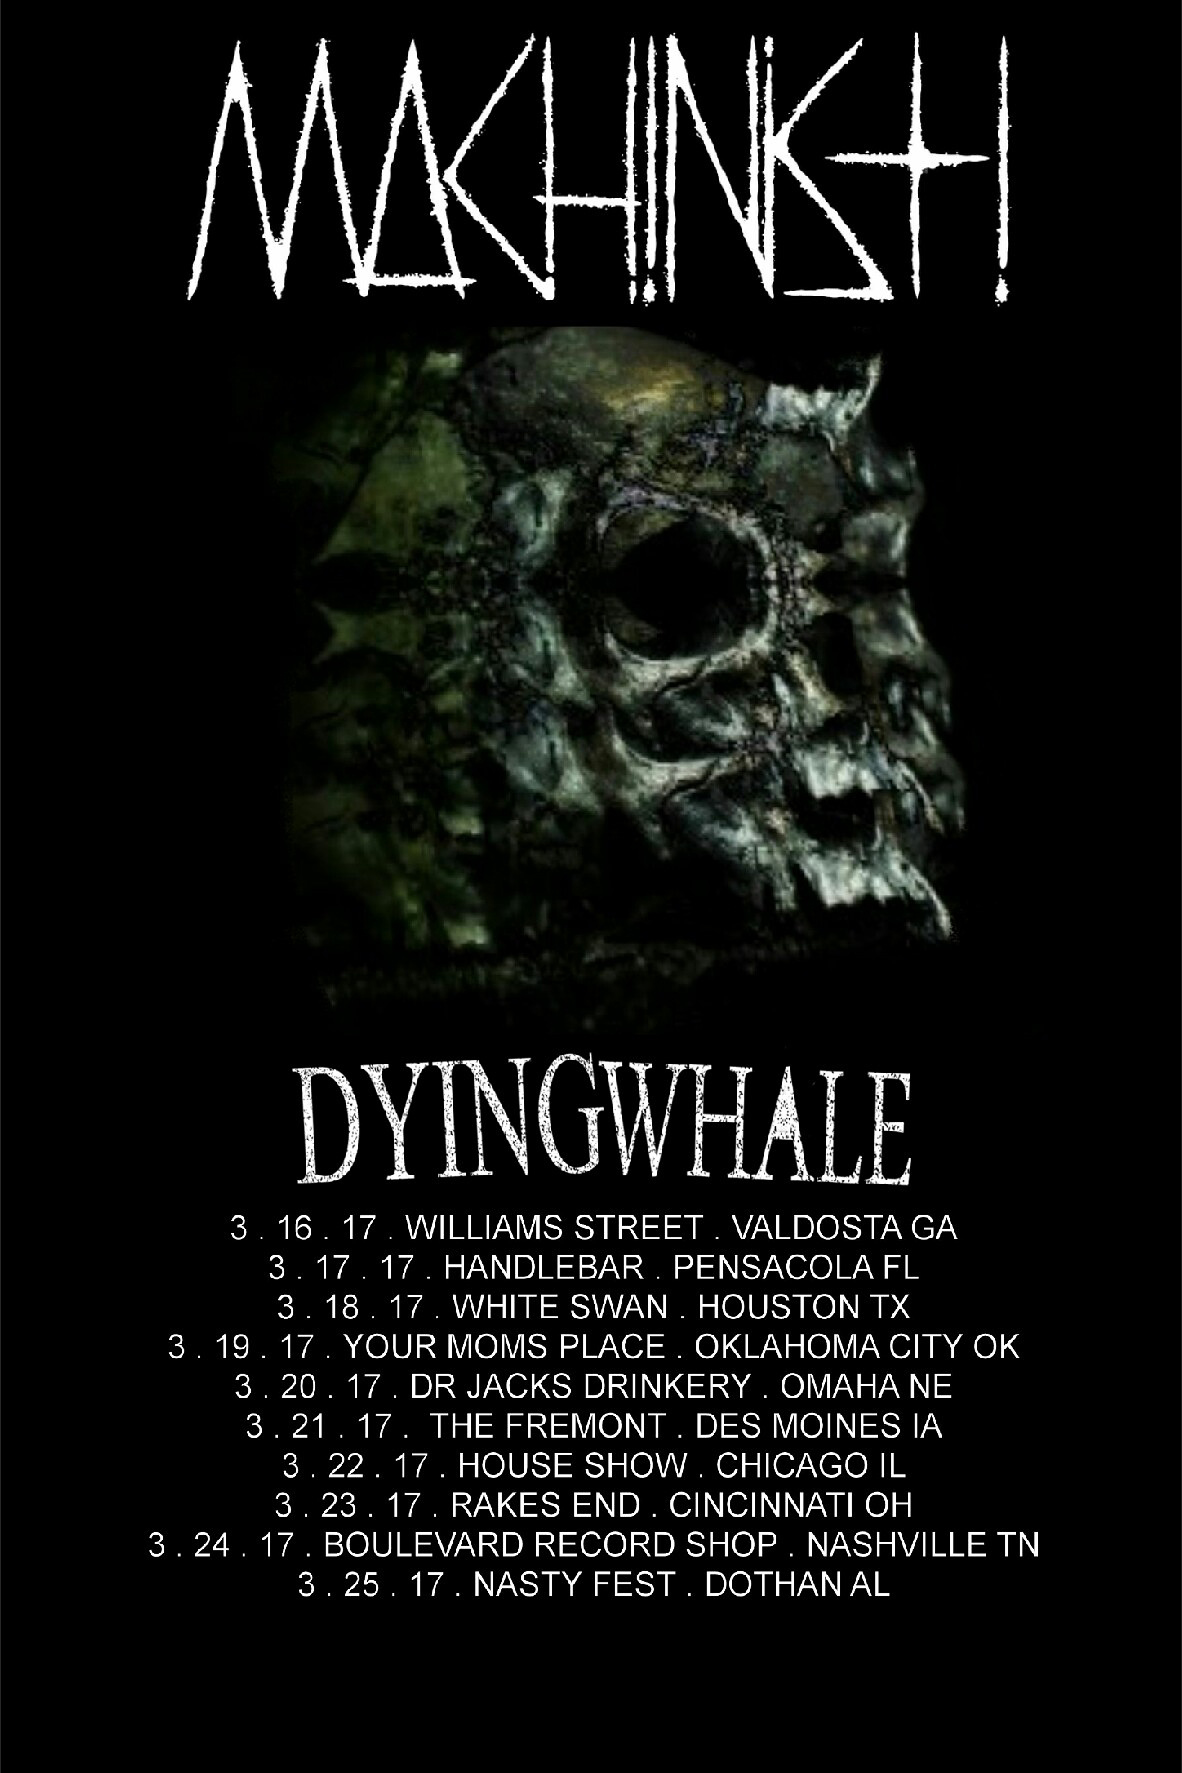 Dying Whale March tour